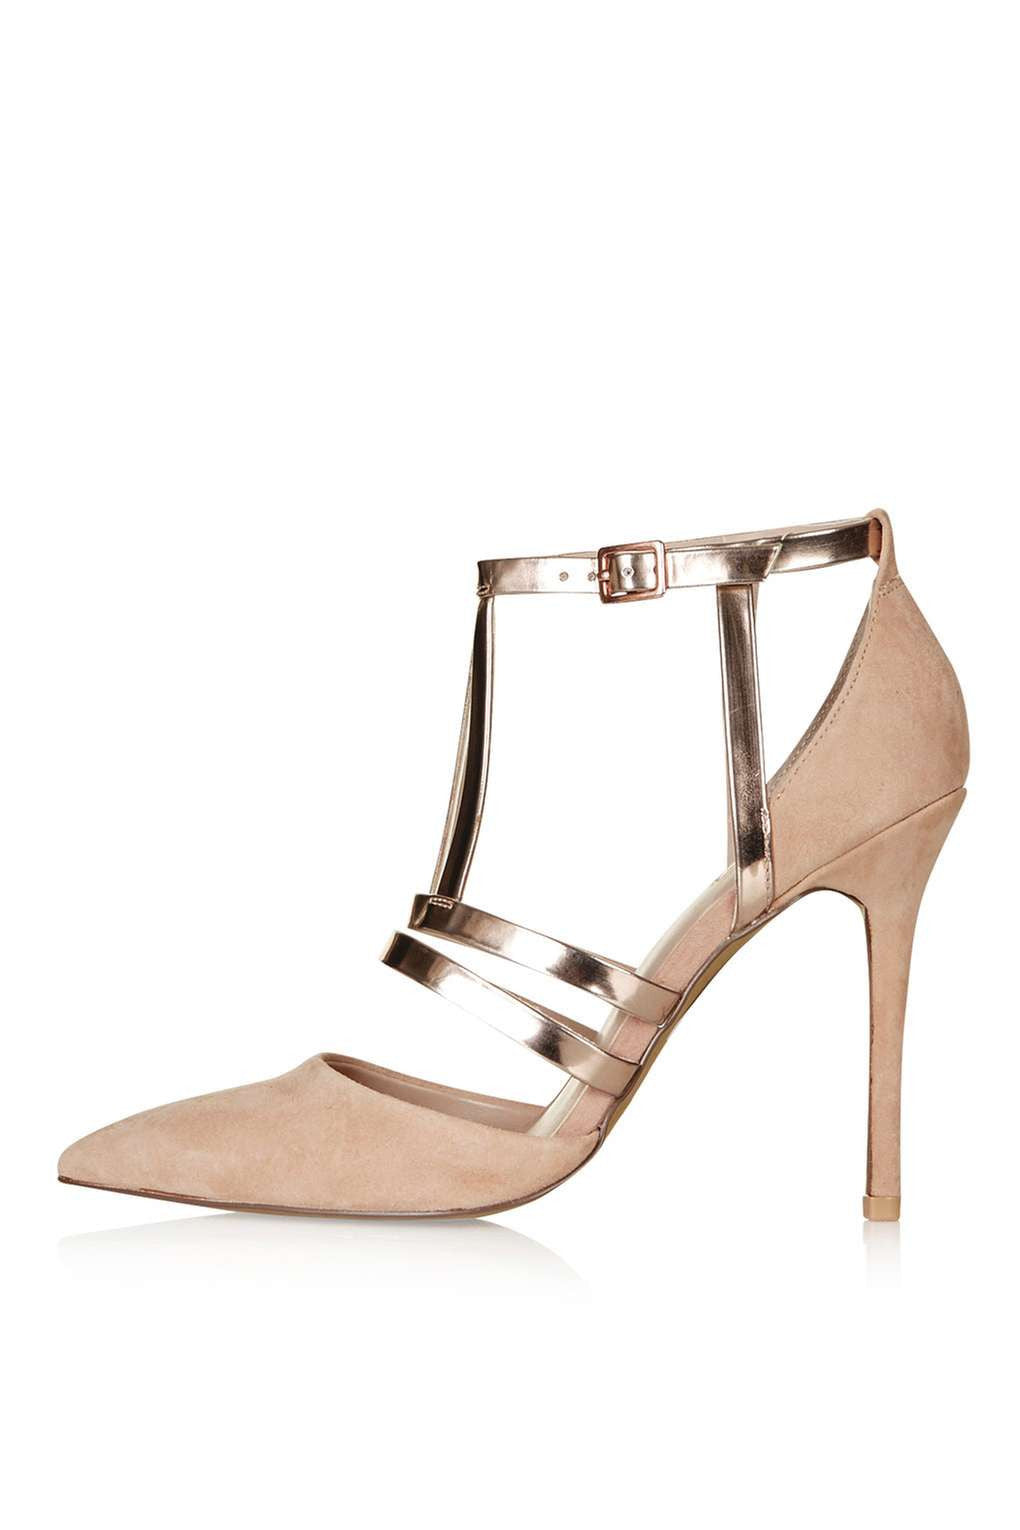 TopShop GENEVA Nude Court Shoes